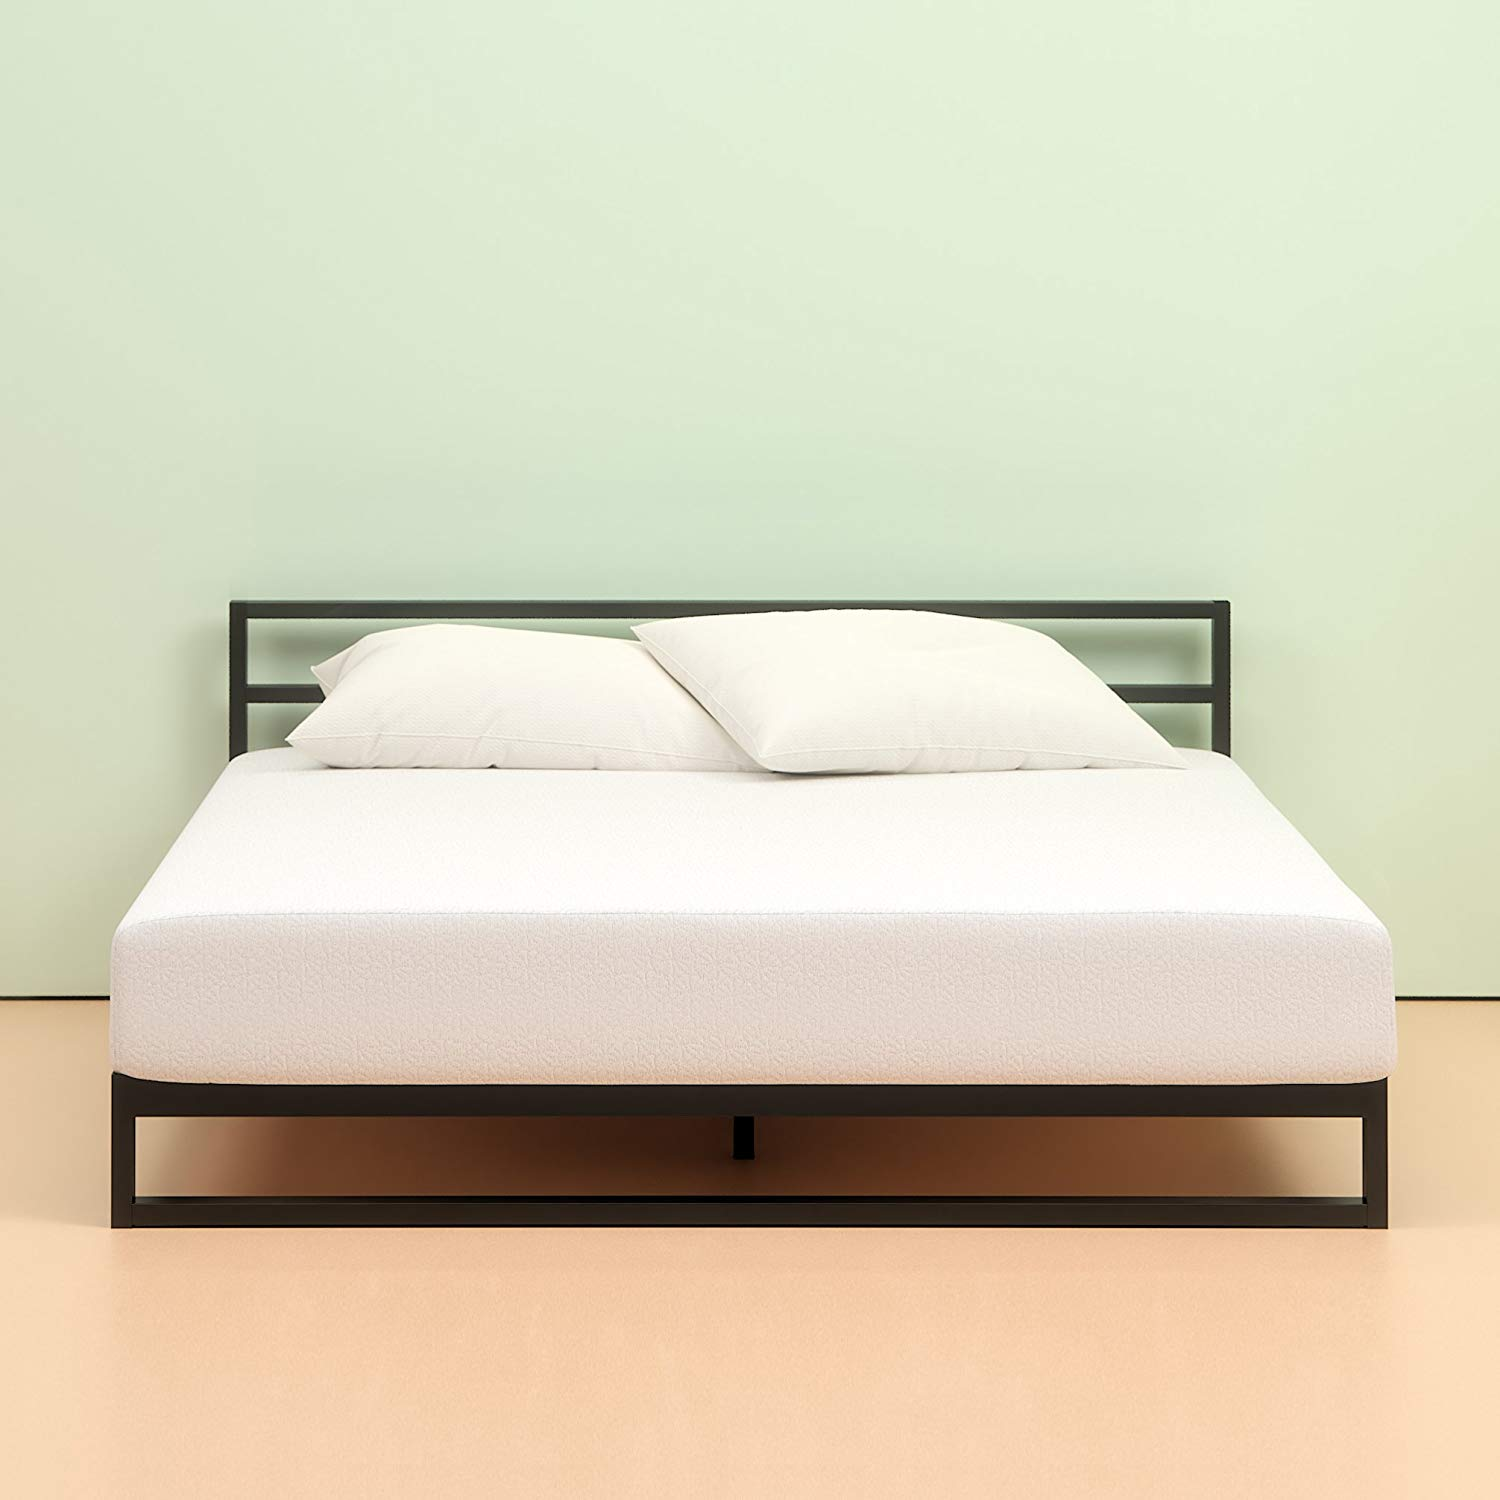 Zinus Green Tea Best Twin Mattress Review by www.snoremagazine.com